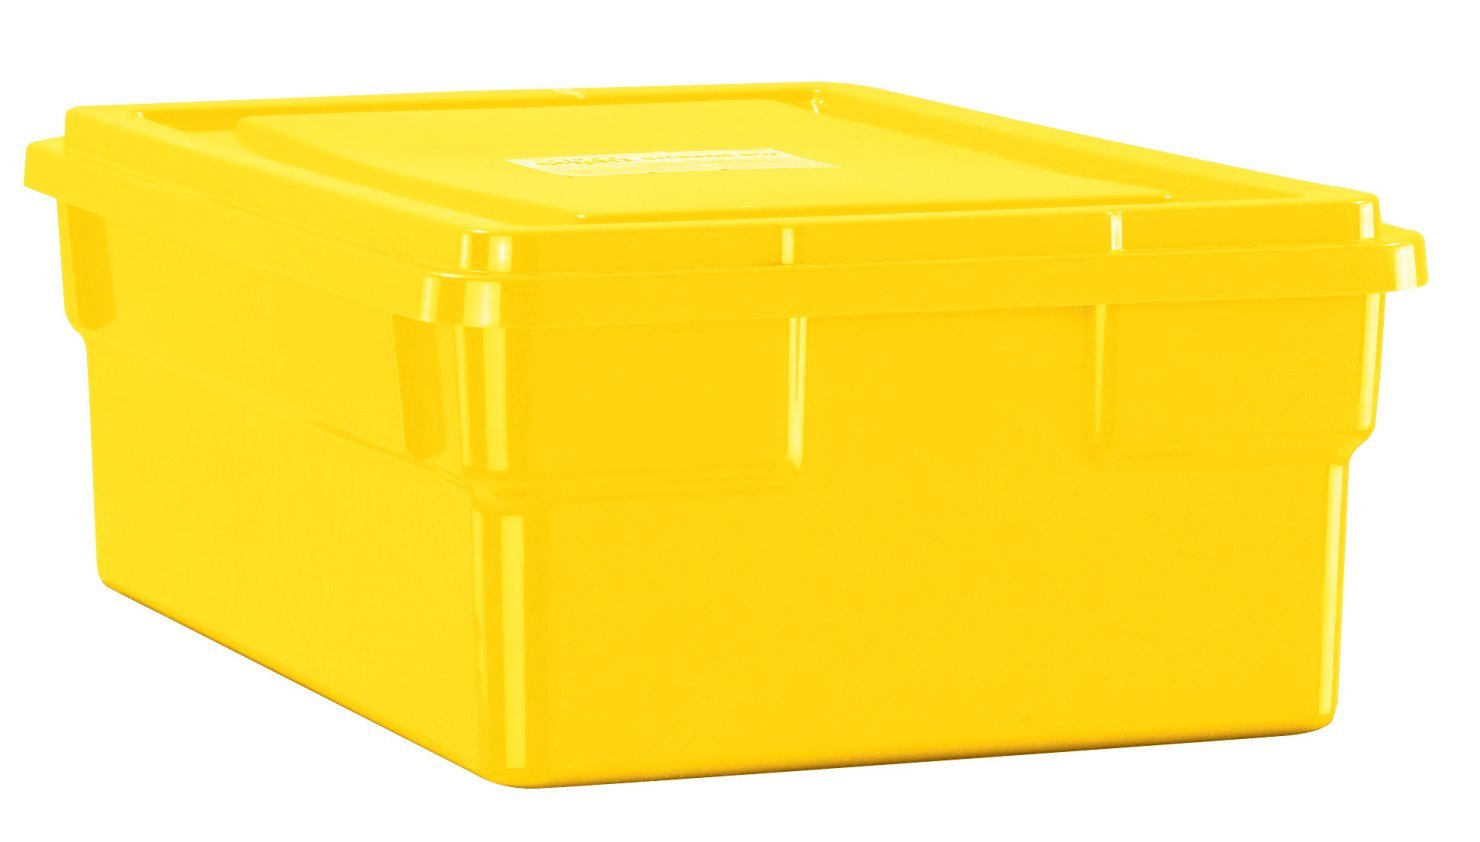 Childcraft Storage Box with Lid - 16 x 11 x 6 inches - Yellow Early Childhood Development Products Amazon.com Industrial u0026 Scientific  sc 1 st  Amazon.com : coloured storage boxes  - Aquiesqueretaro.Com